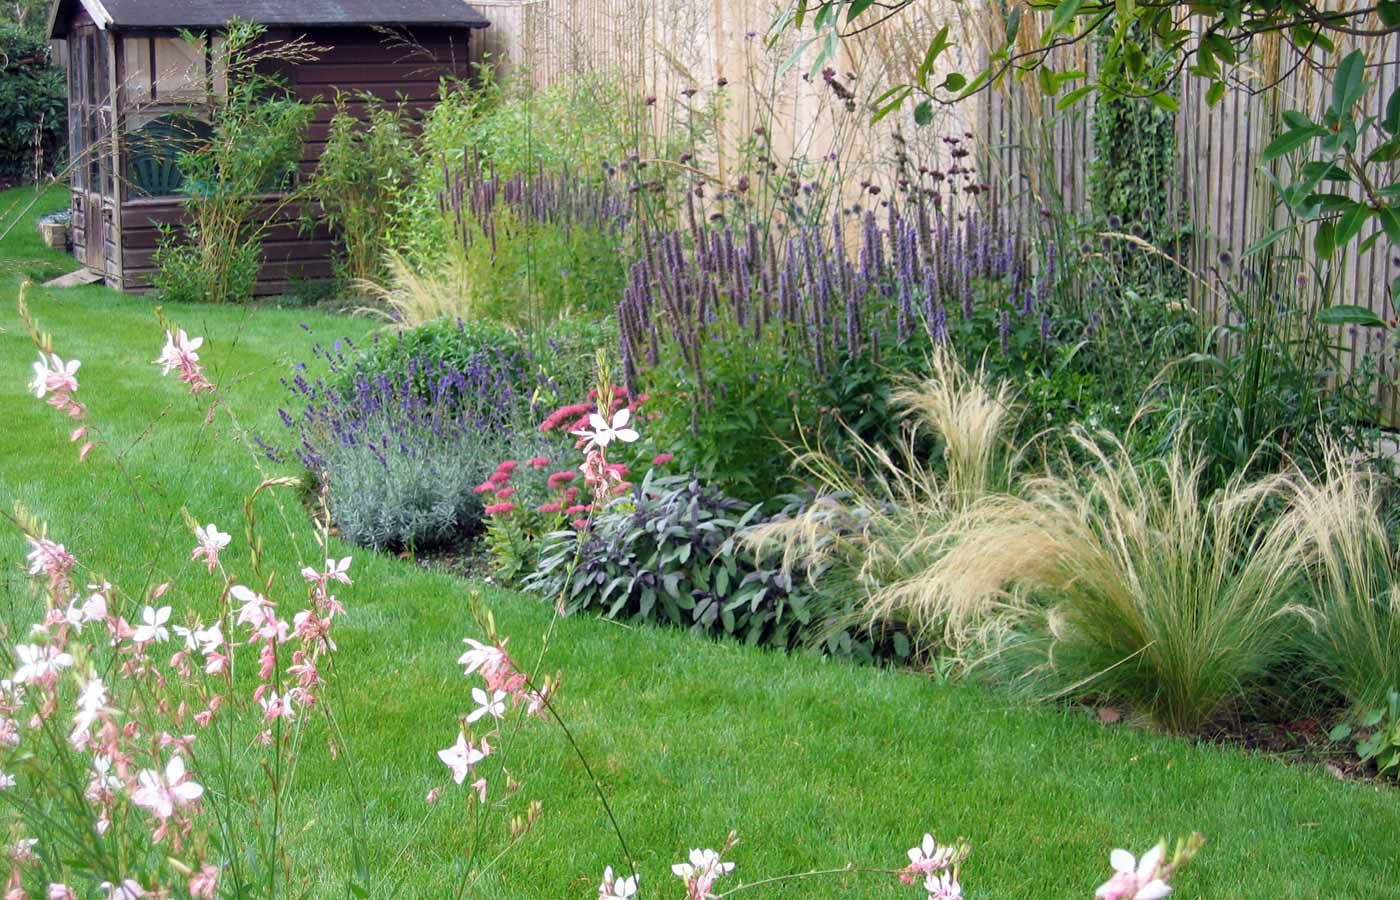 Genial Grasses And Perennials In Surrey Garden